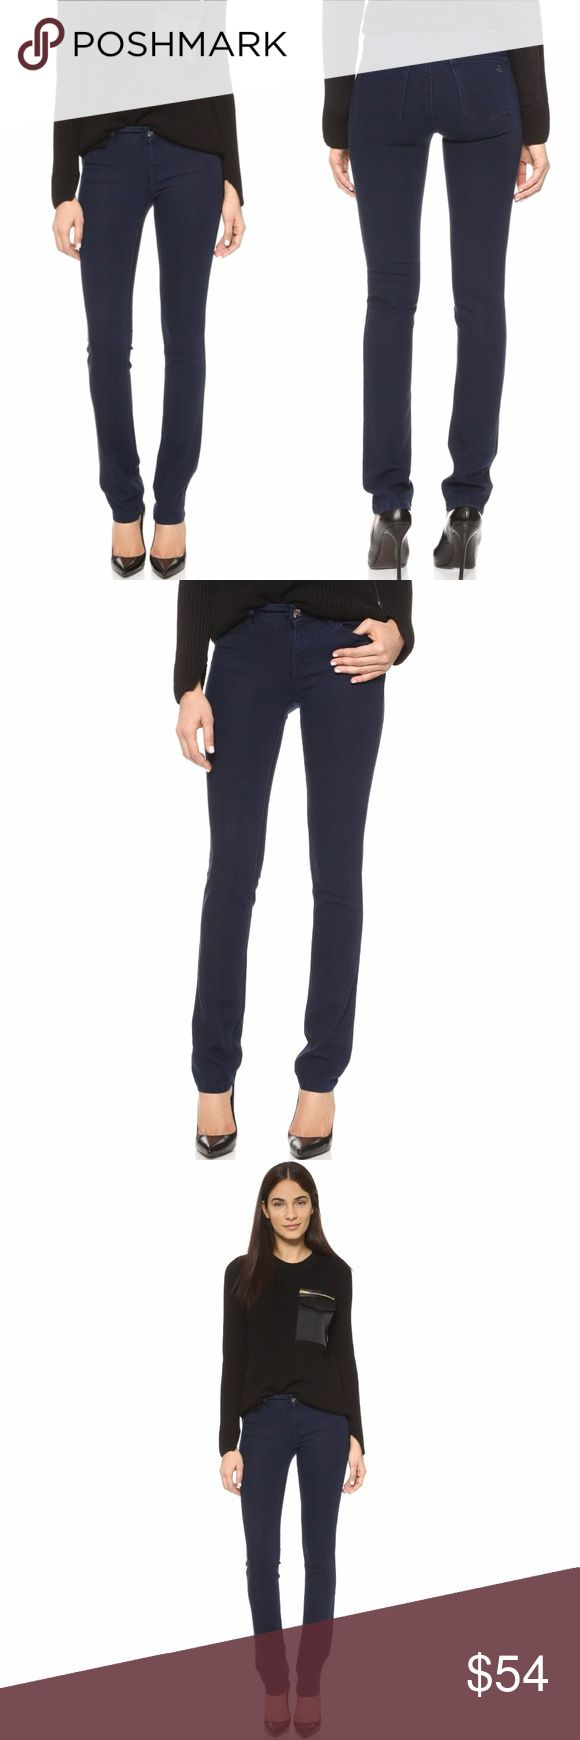 "New DL1961 Coco Curvy Jeans 247320 DL1961 Coco Curvy Womens Straight Jeans - Inkwell - Size 25       Cotton blend  New with tags.    MEASUREMENTS Waist:  13"" flat across Rise:  7.5"" Inseam: 34""  All items I sell are 100% authentic! Buy with Confidence. DL1961 Jeans Straight Leg"